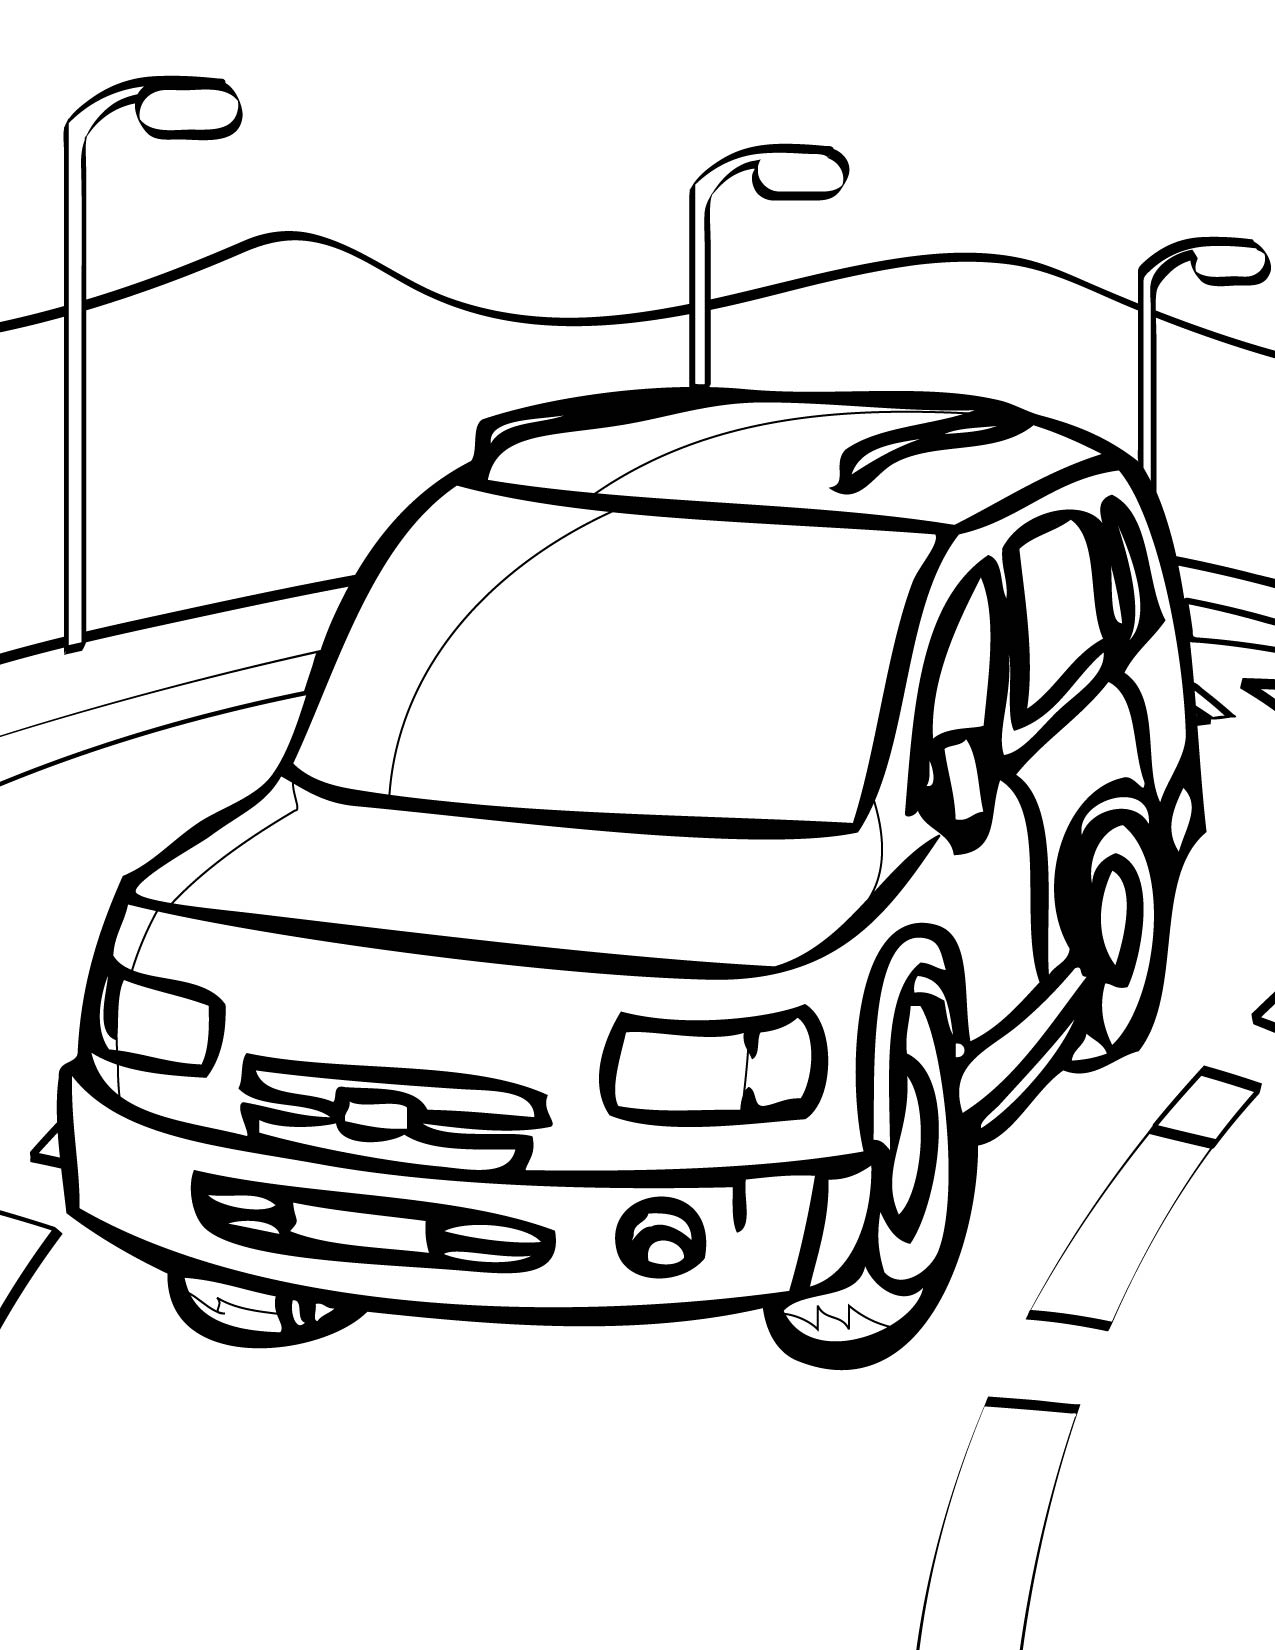 car coloring games coloring pages flower colouring games awesome 10 games coloring car